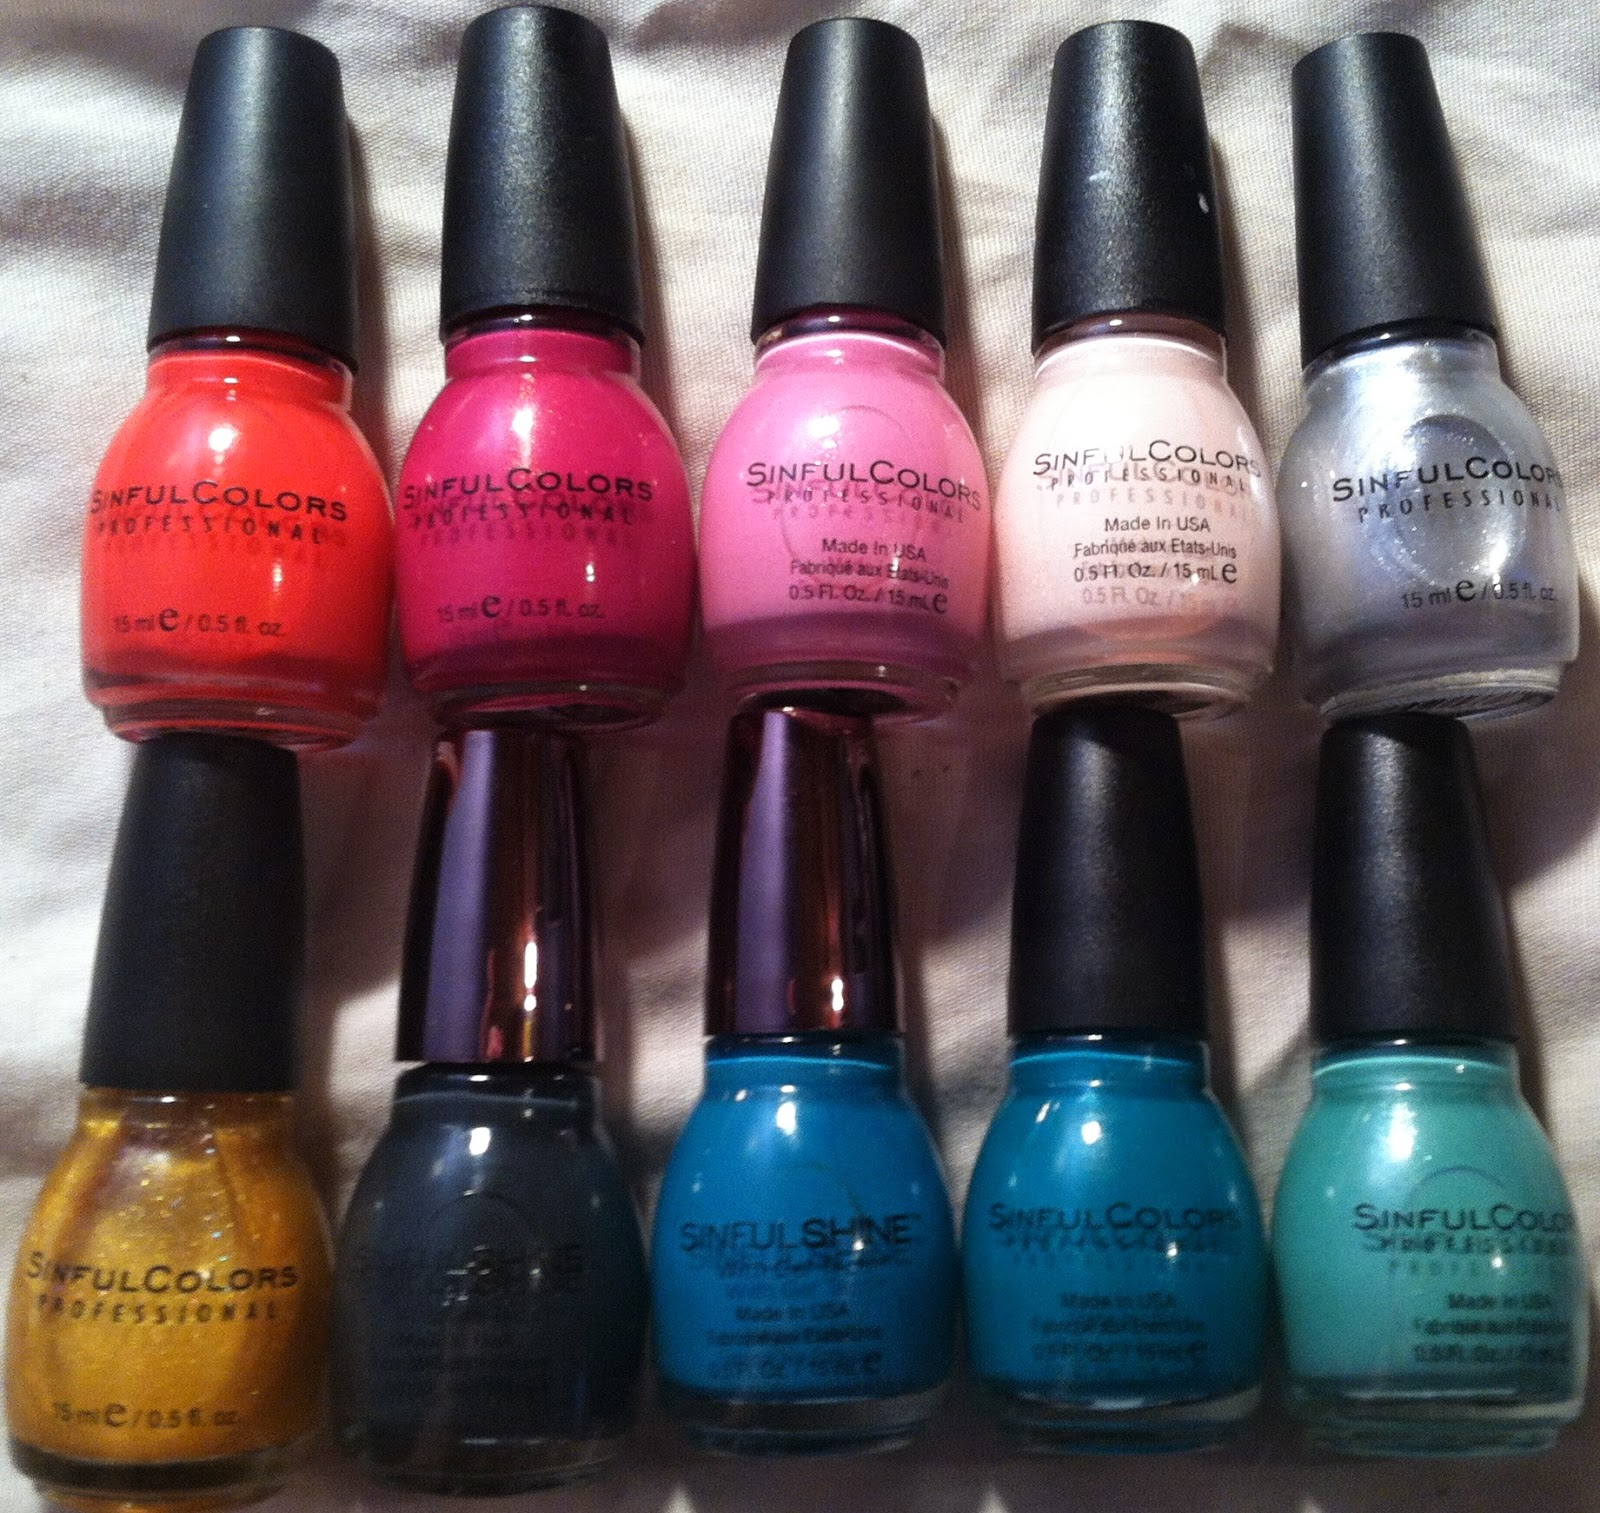 My Top 10 Sinful Colors Nail Polishes